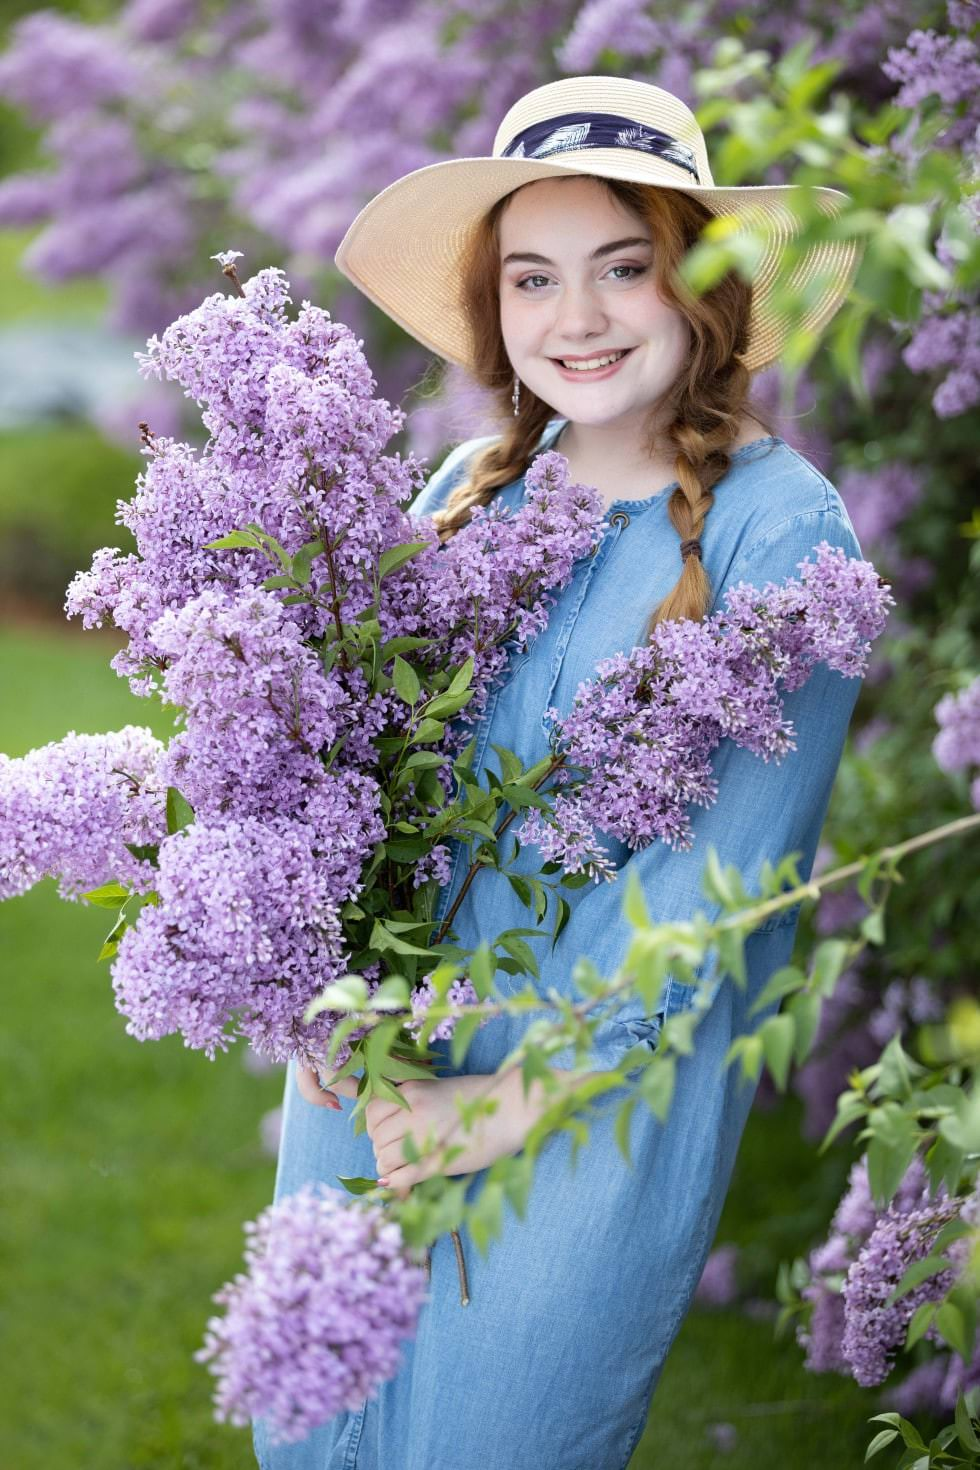 fun_bright_senior_girl_flowers_portrait